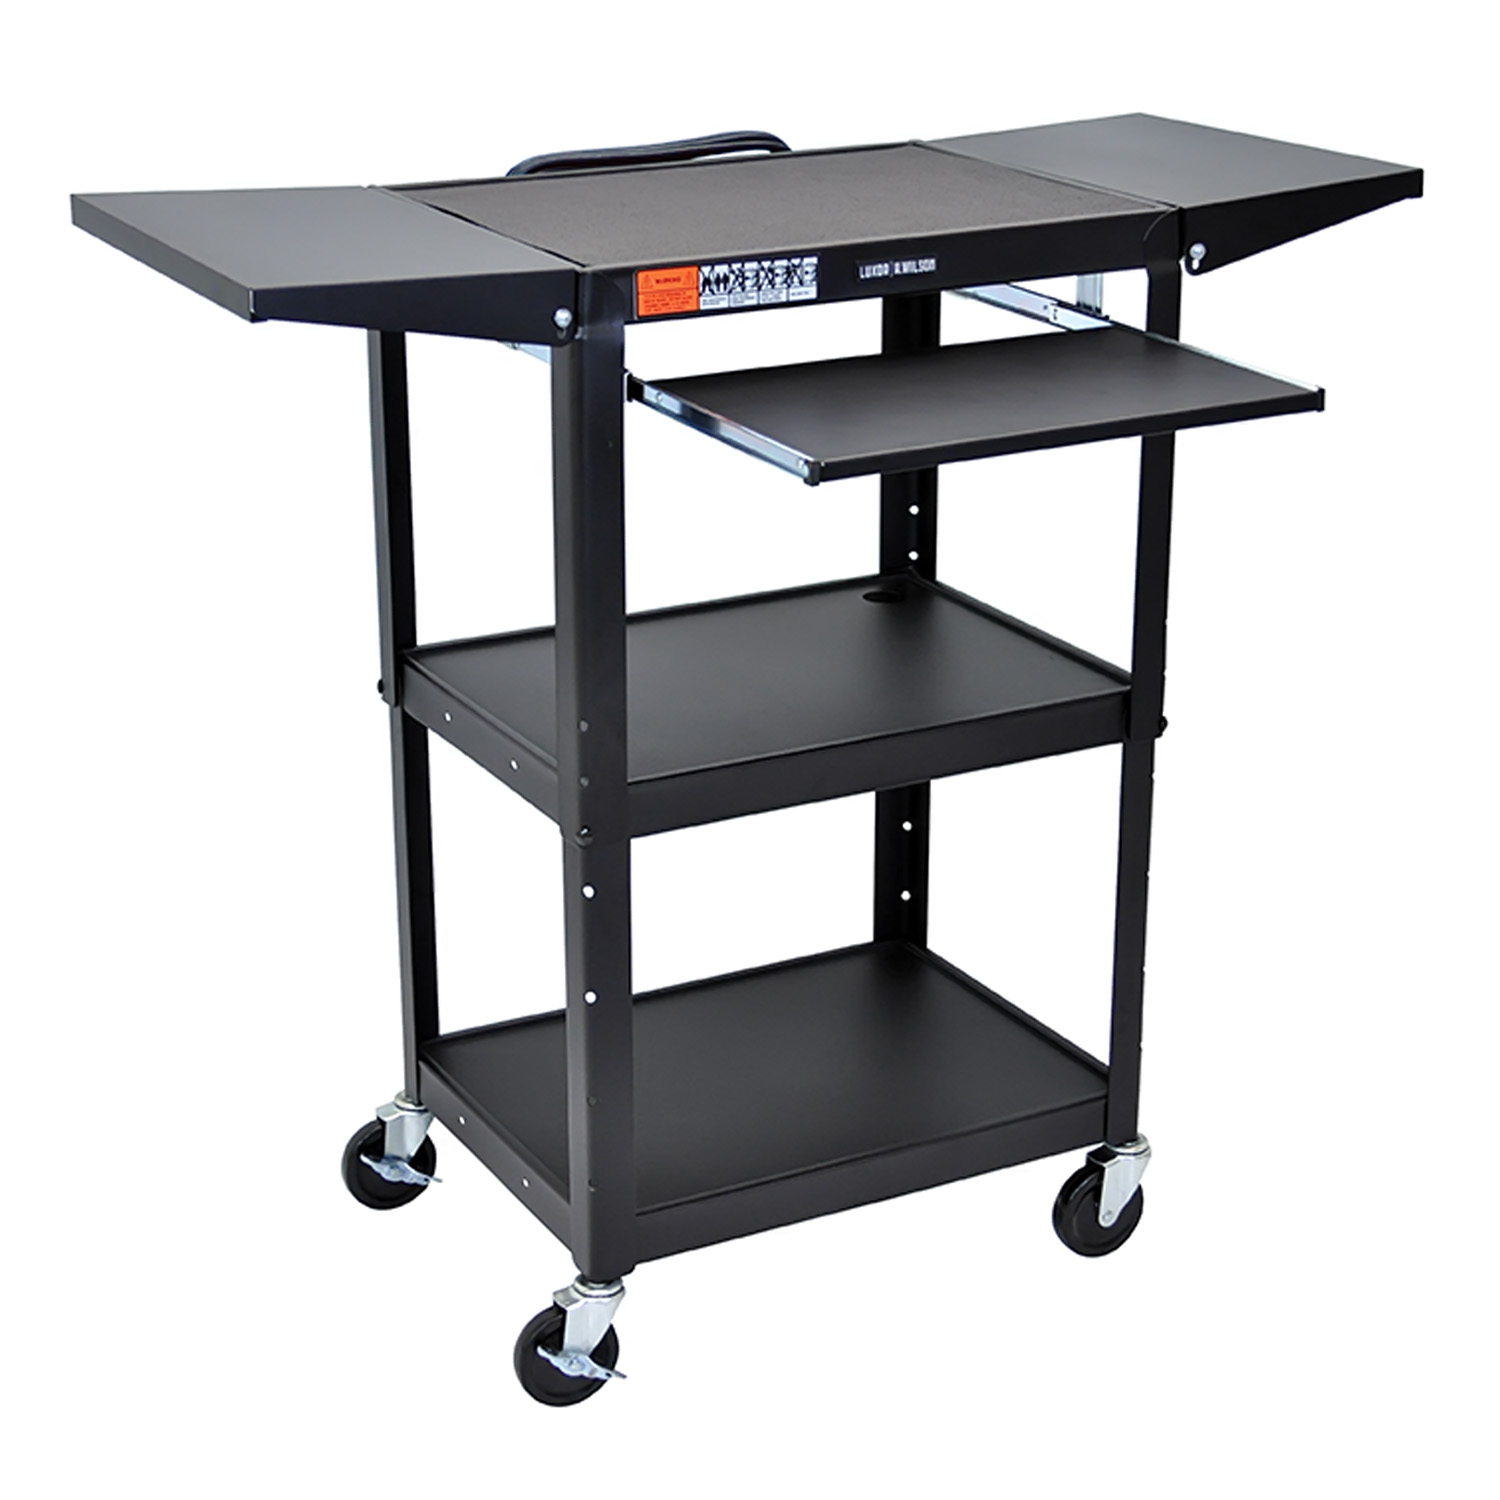 "Offex Rolling Multipurpose 42""H Steel Height Adjustable AV Cart With Pullout Keyboard Tray And Drop Leaf shelves - Black at Sears.com"